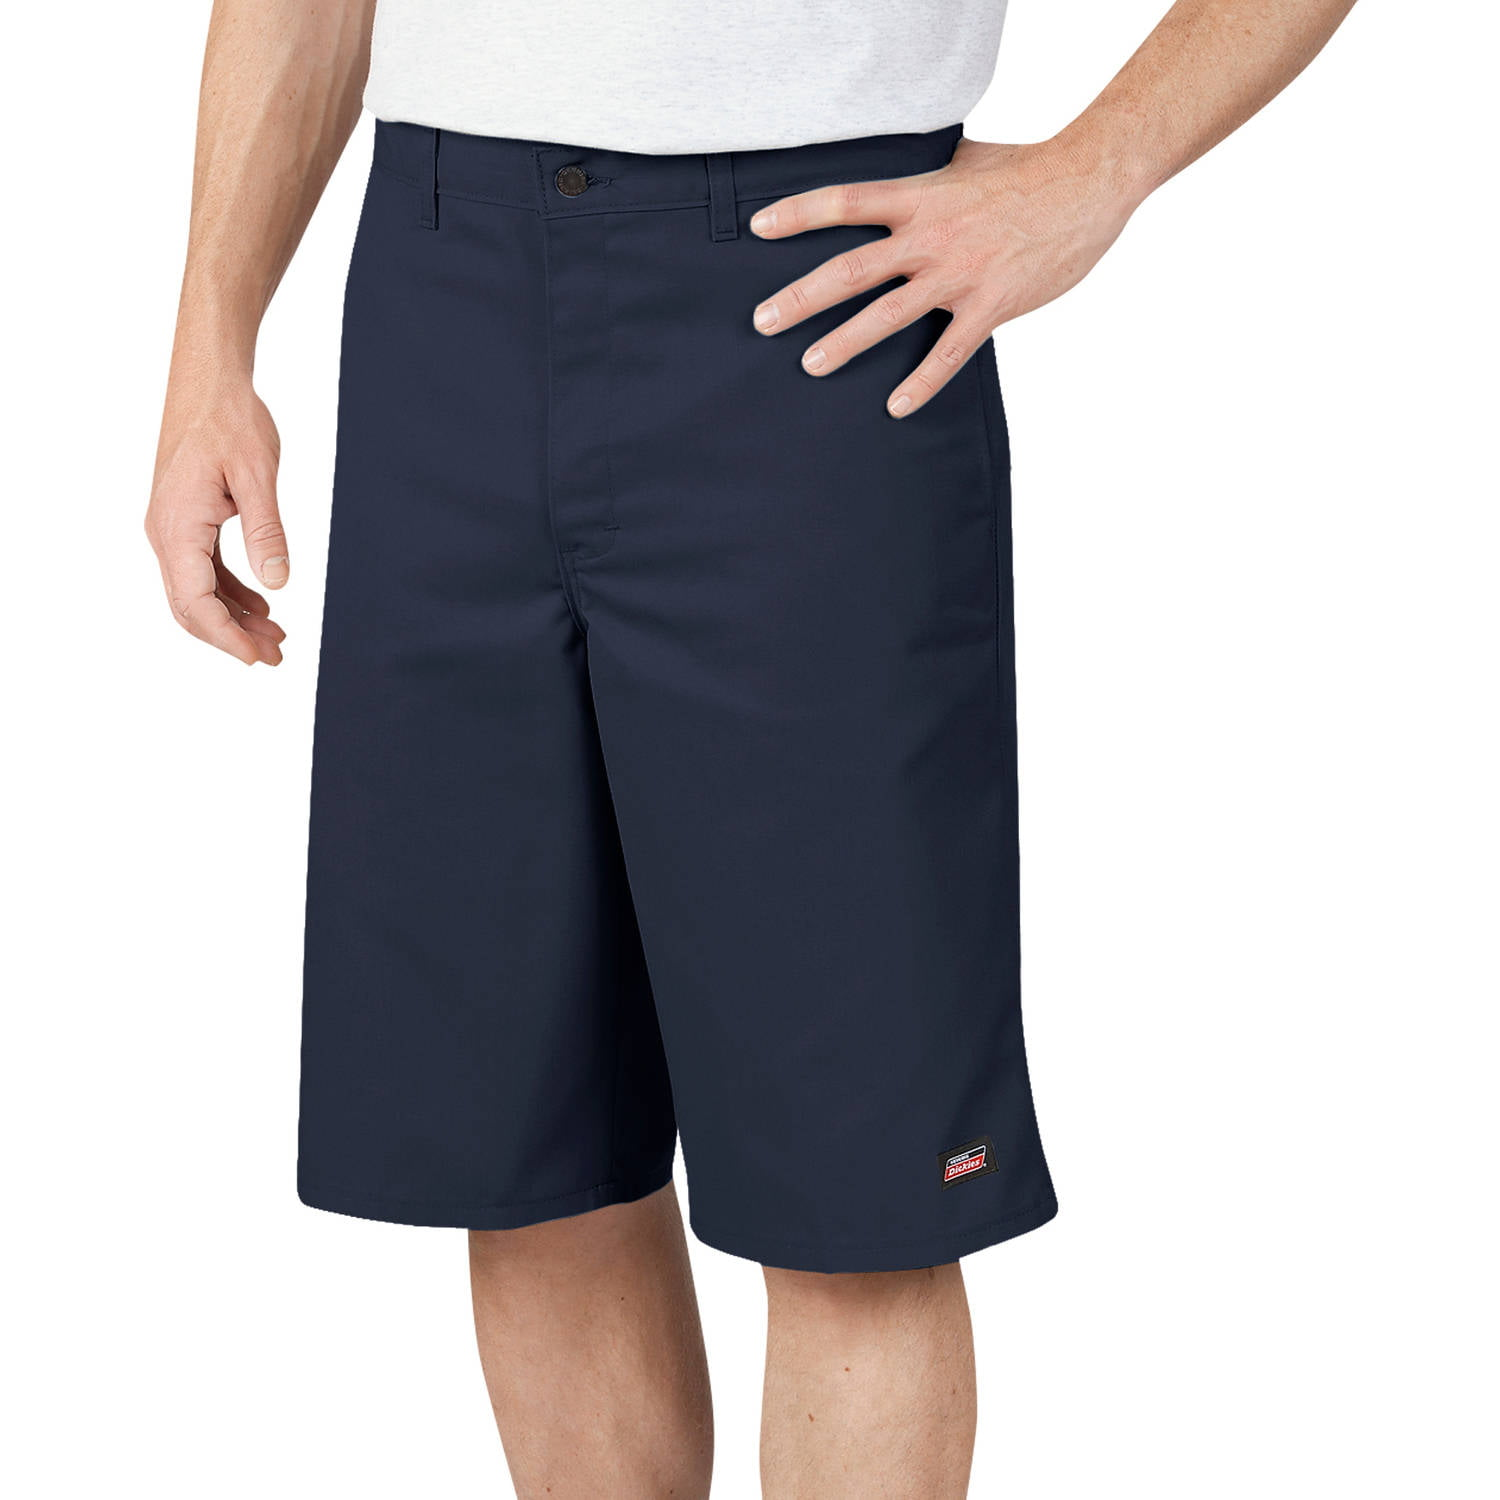 men u0026 39 s business casual summer